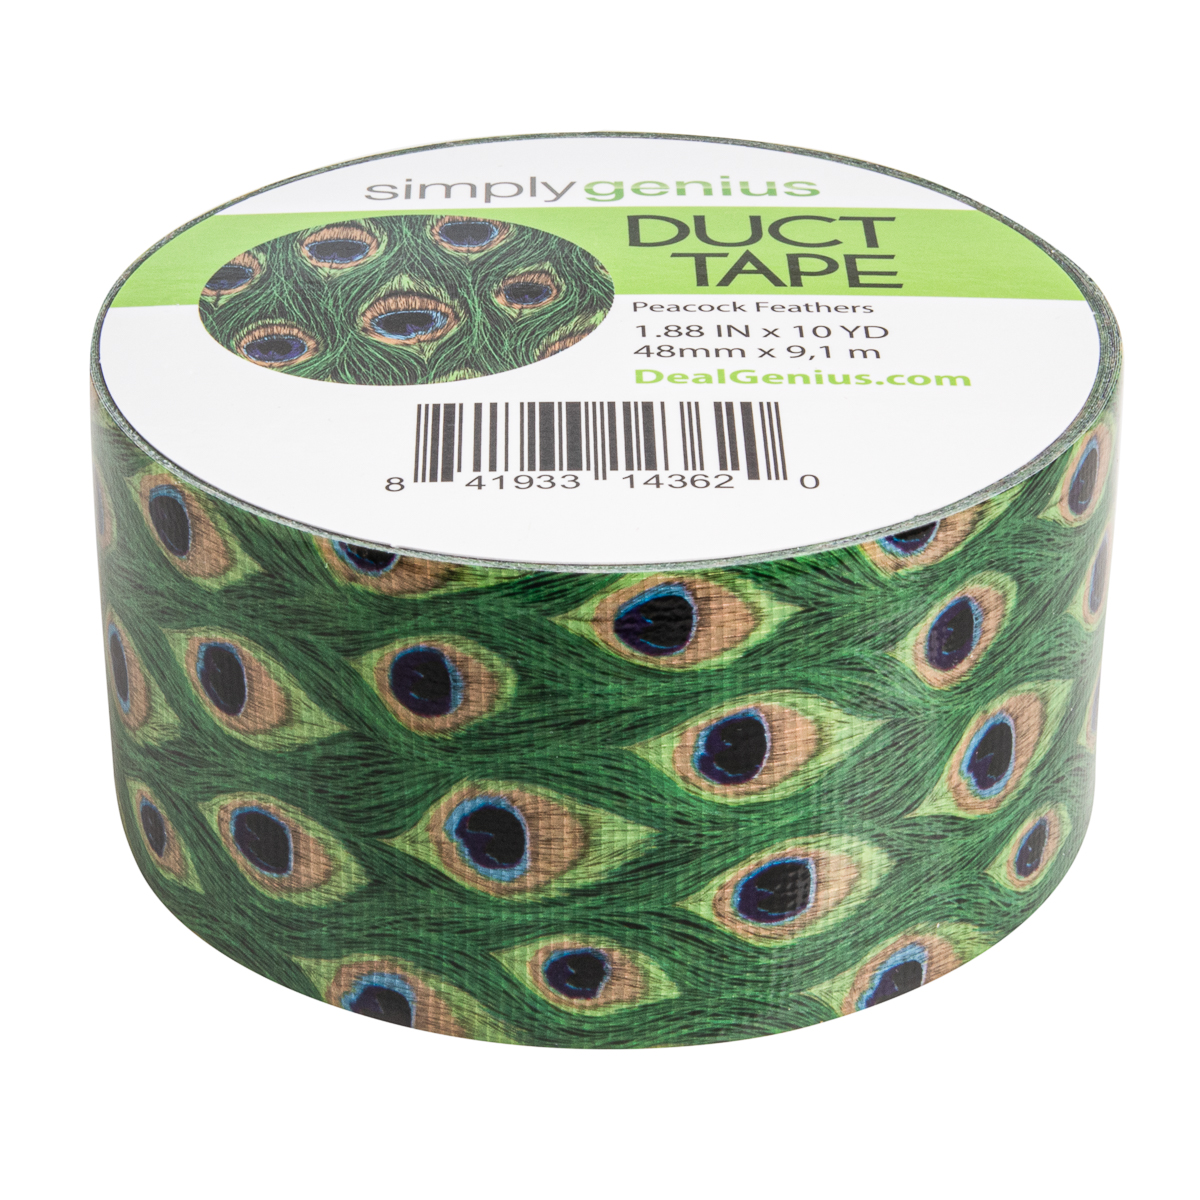 Simply-Genius-Duct-Tape-Roll-Colors-Patterns-Craft-Supplies-Colored-amp-Patterned thumbnail 125